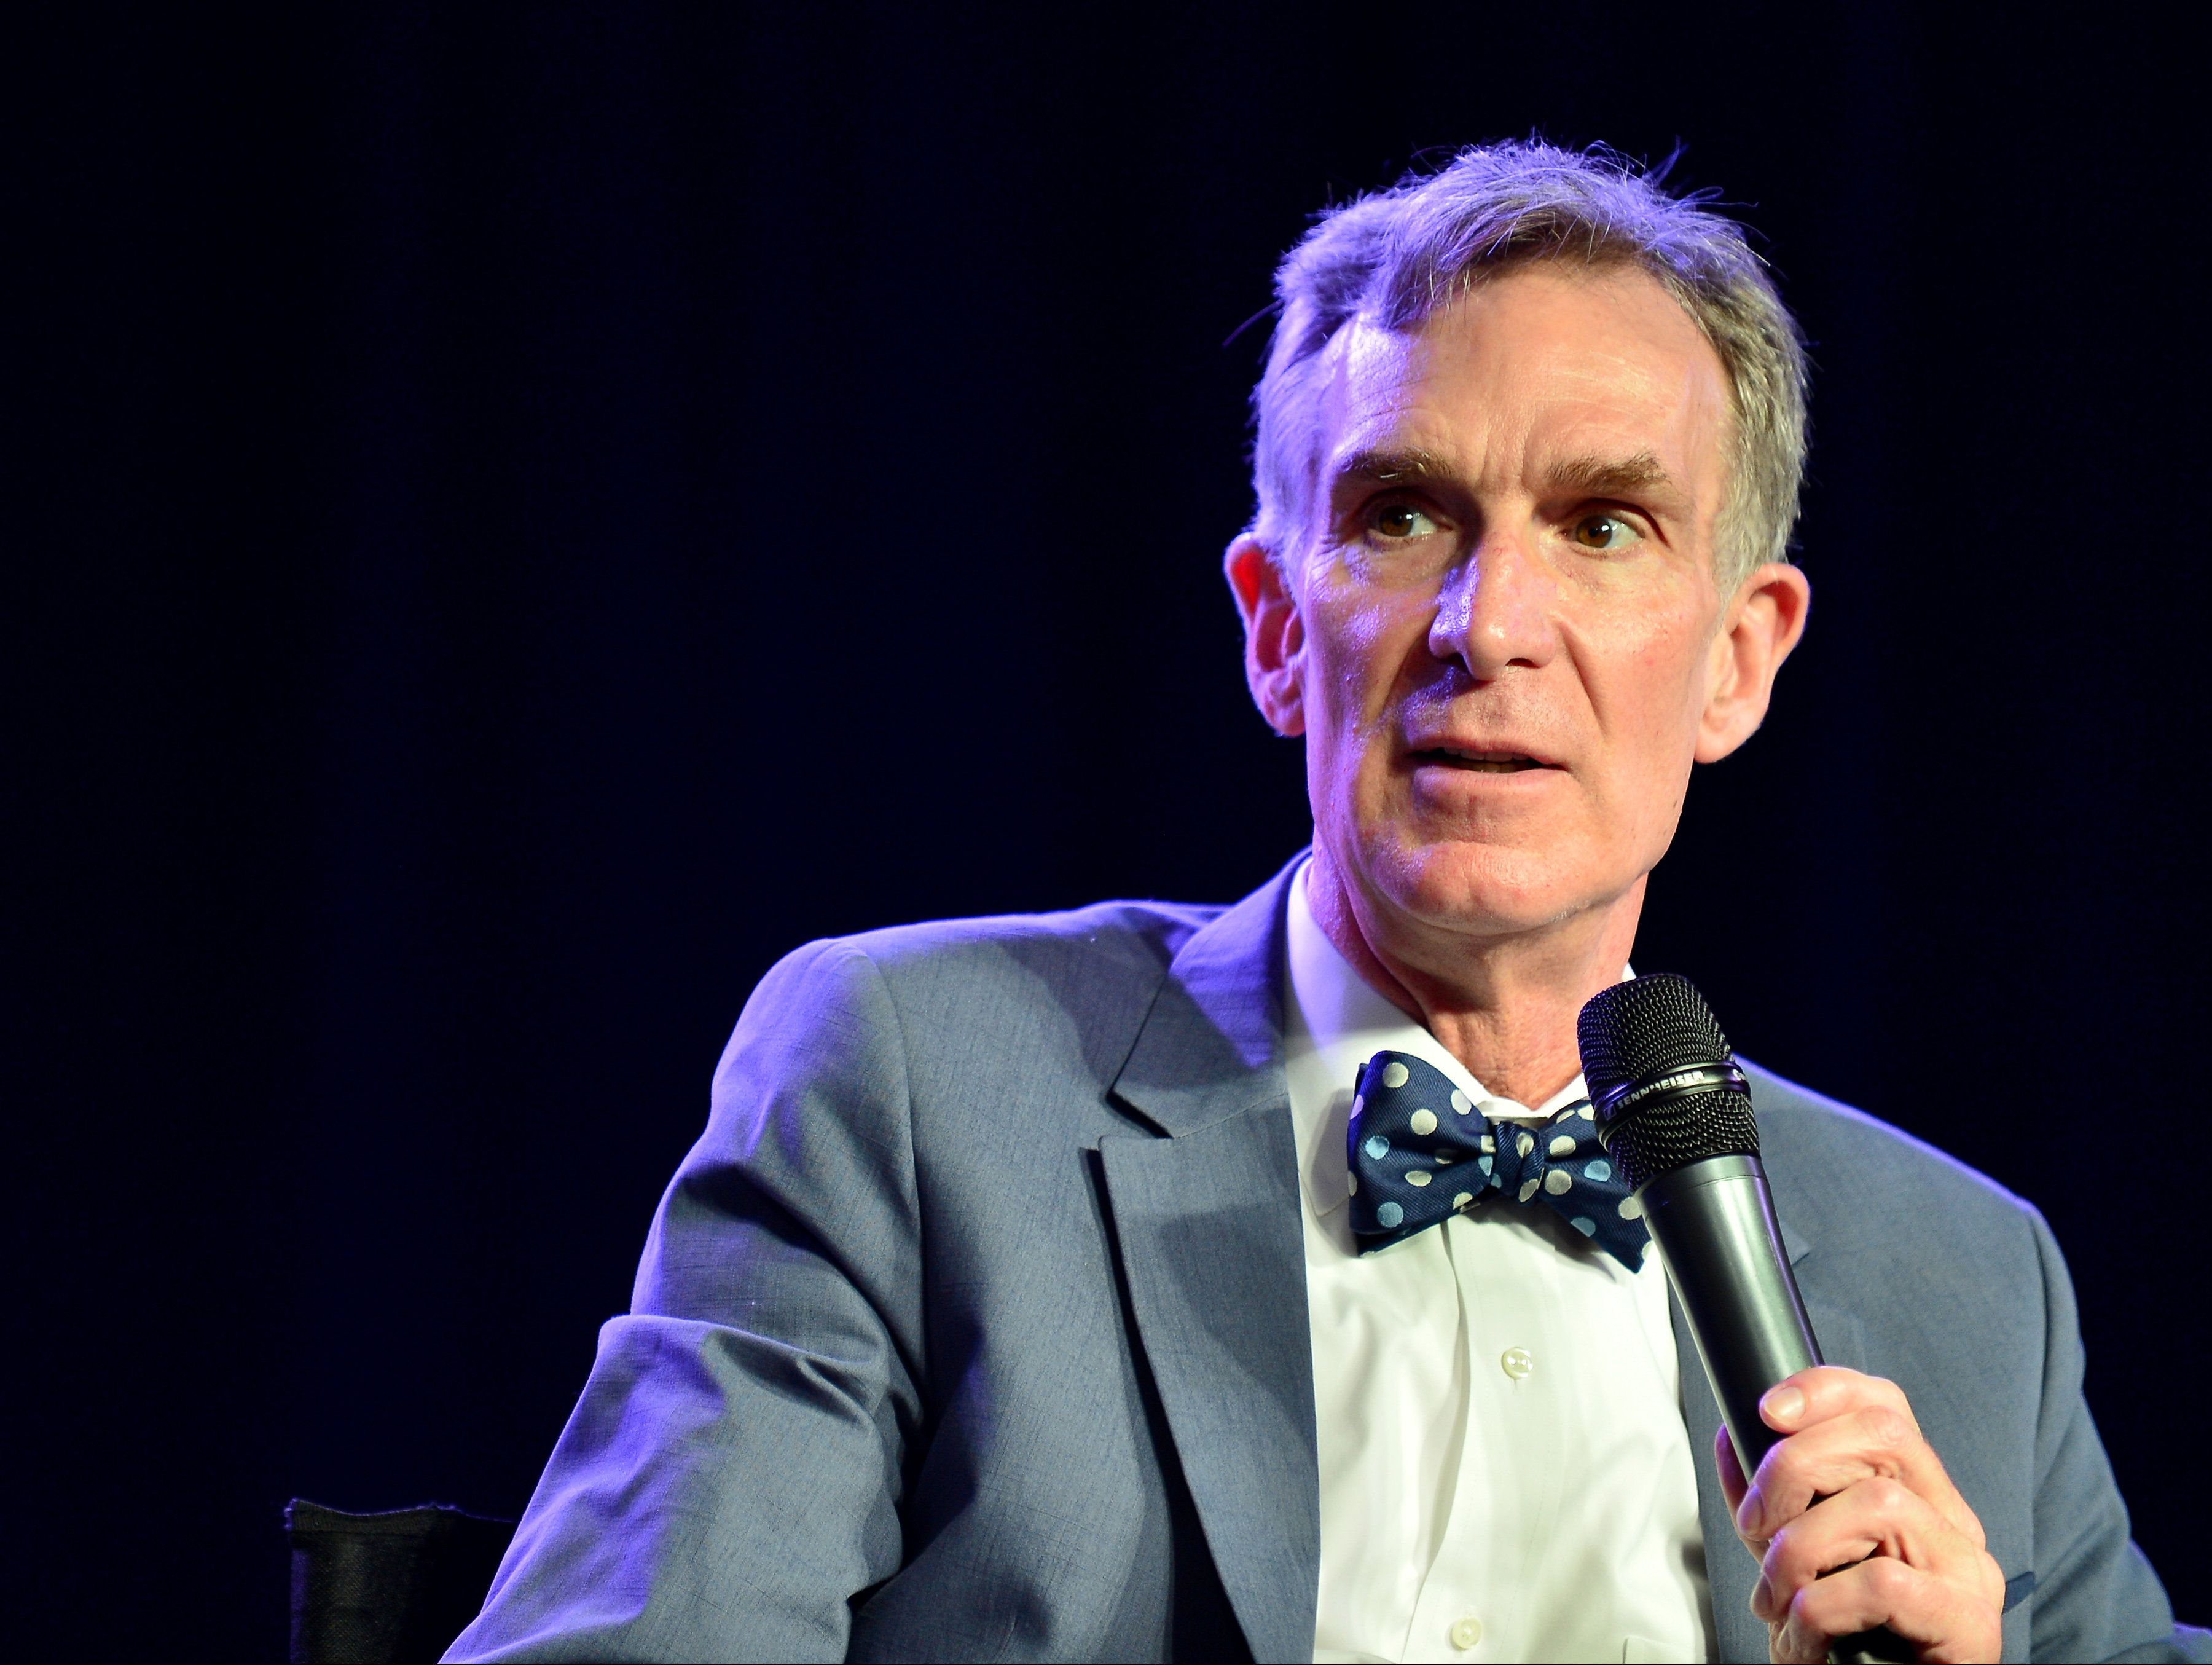 MIAMI, FL - JANUARY 15:  Bill Nye attends Magic City Comic Con at Miami Airport Convention Center on January 15, 2016 in Miami, Florida.  (Photo by Johnny Louis/FilmMagic)